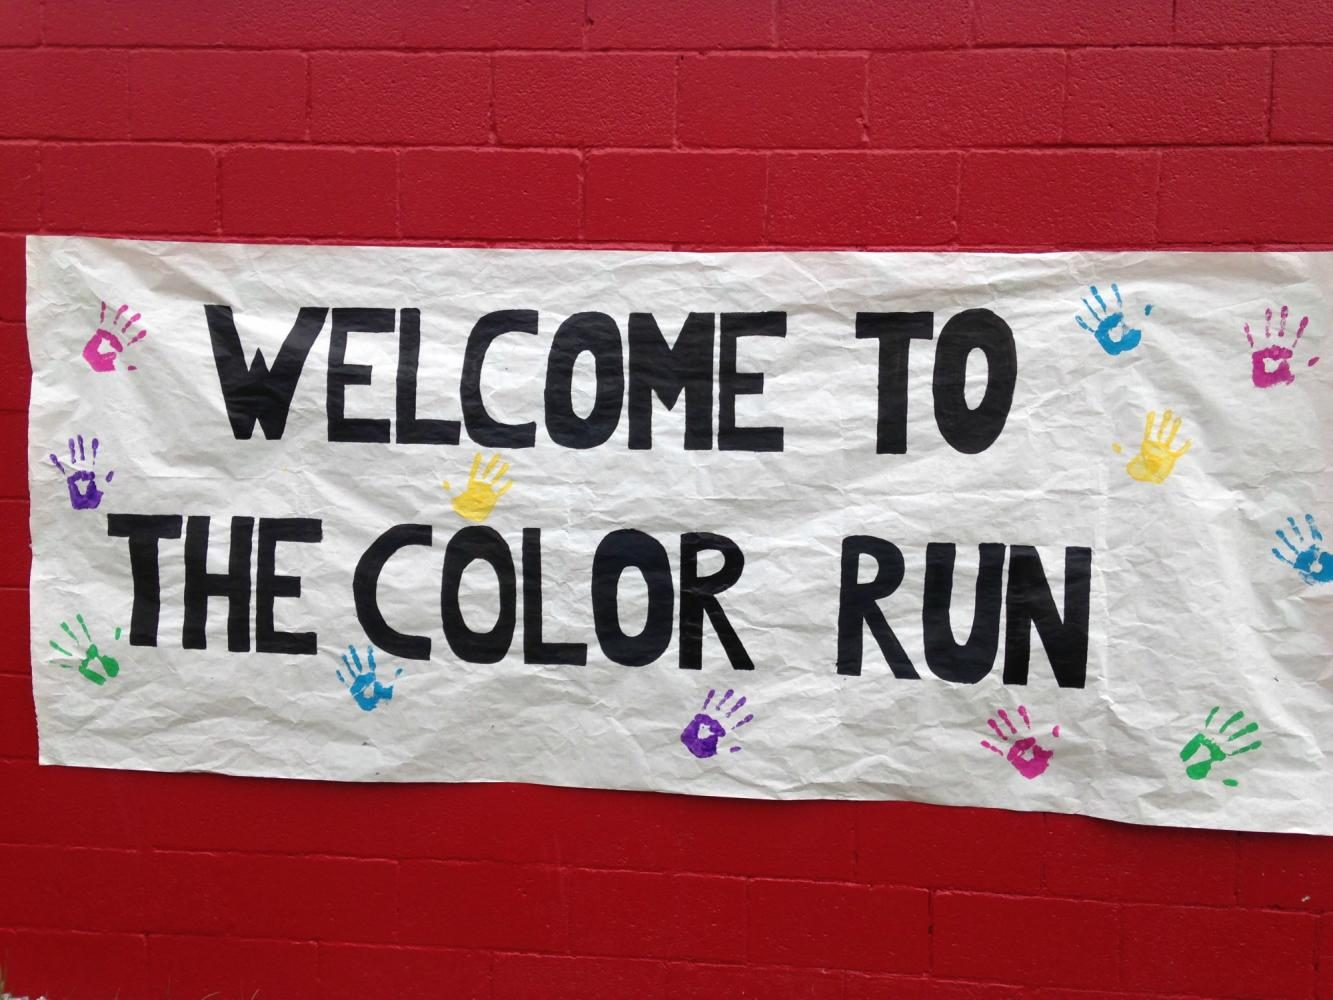 Five businesses were able to sponsor a color for the race.